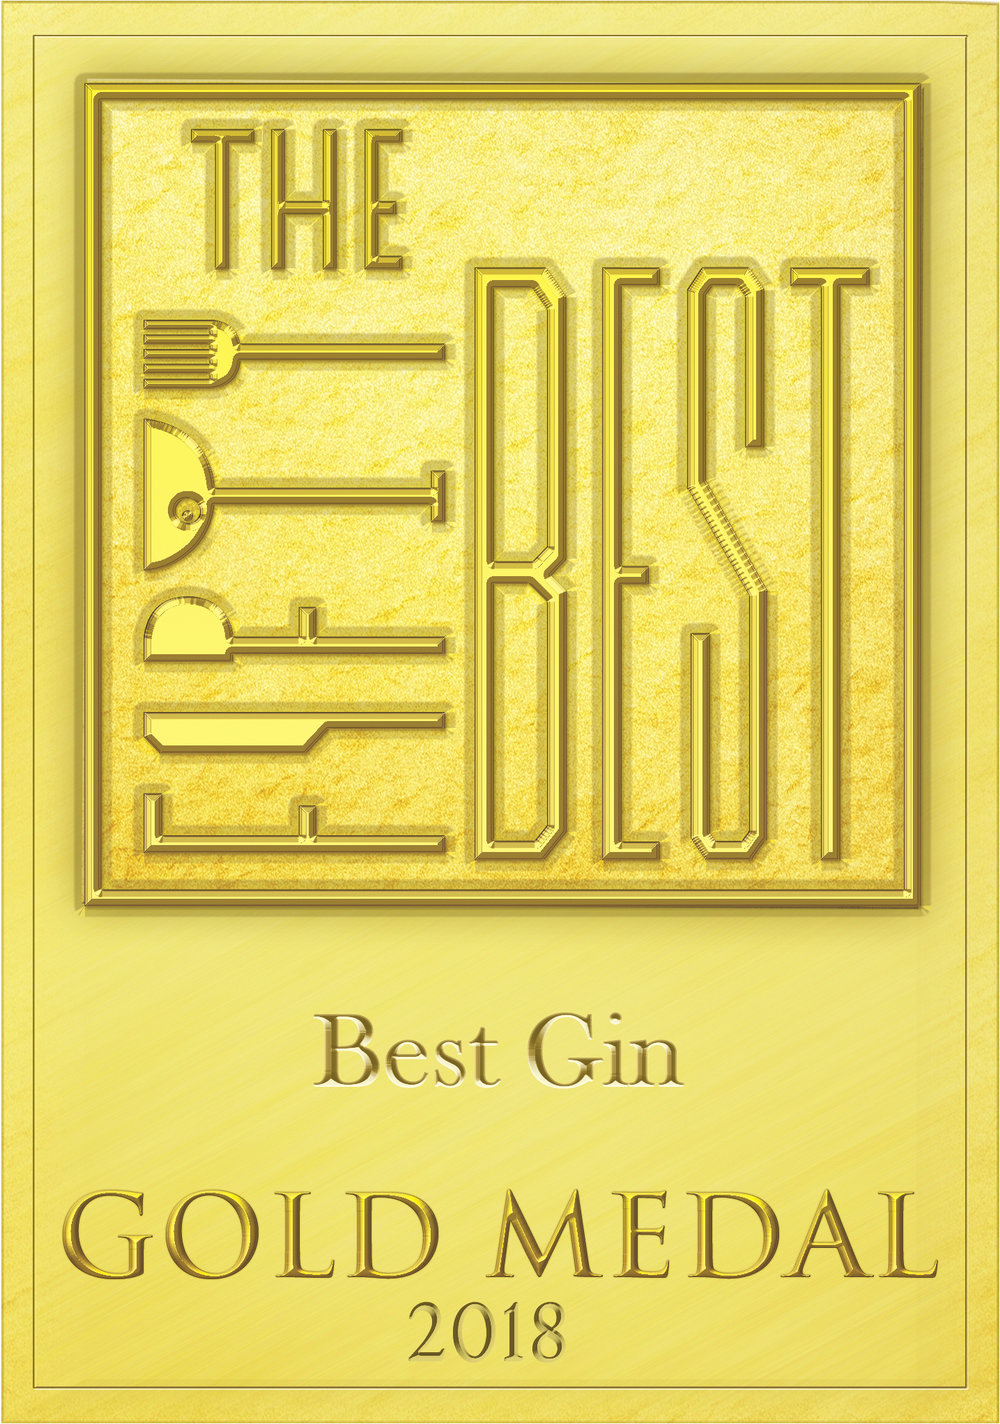 TheFiftyBest_Gin_GoldMedal_2018.jpg